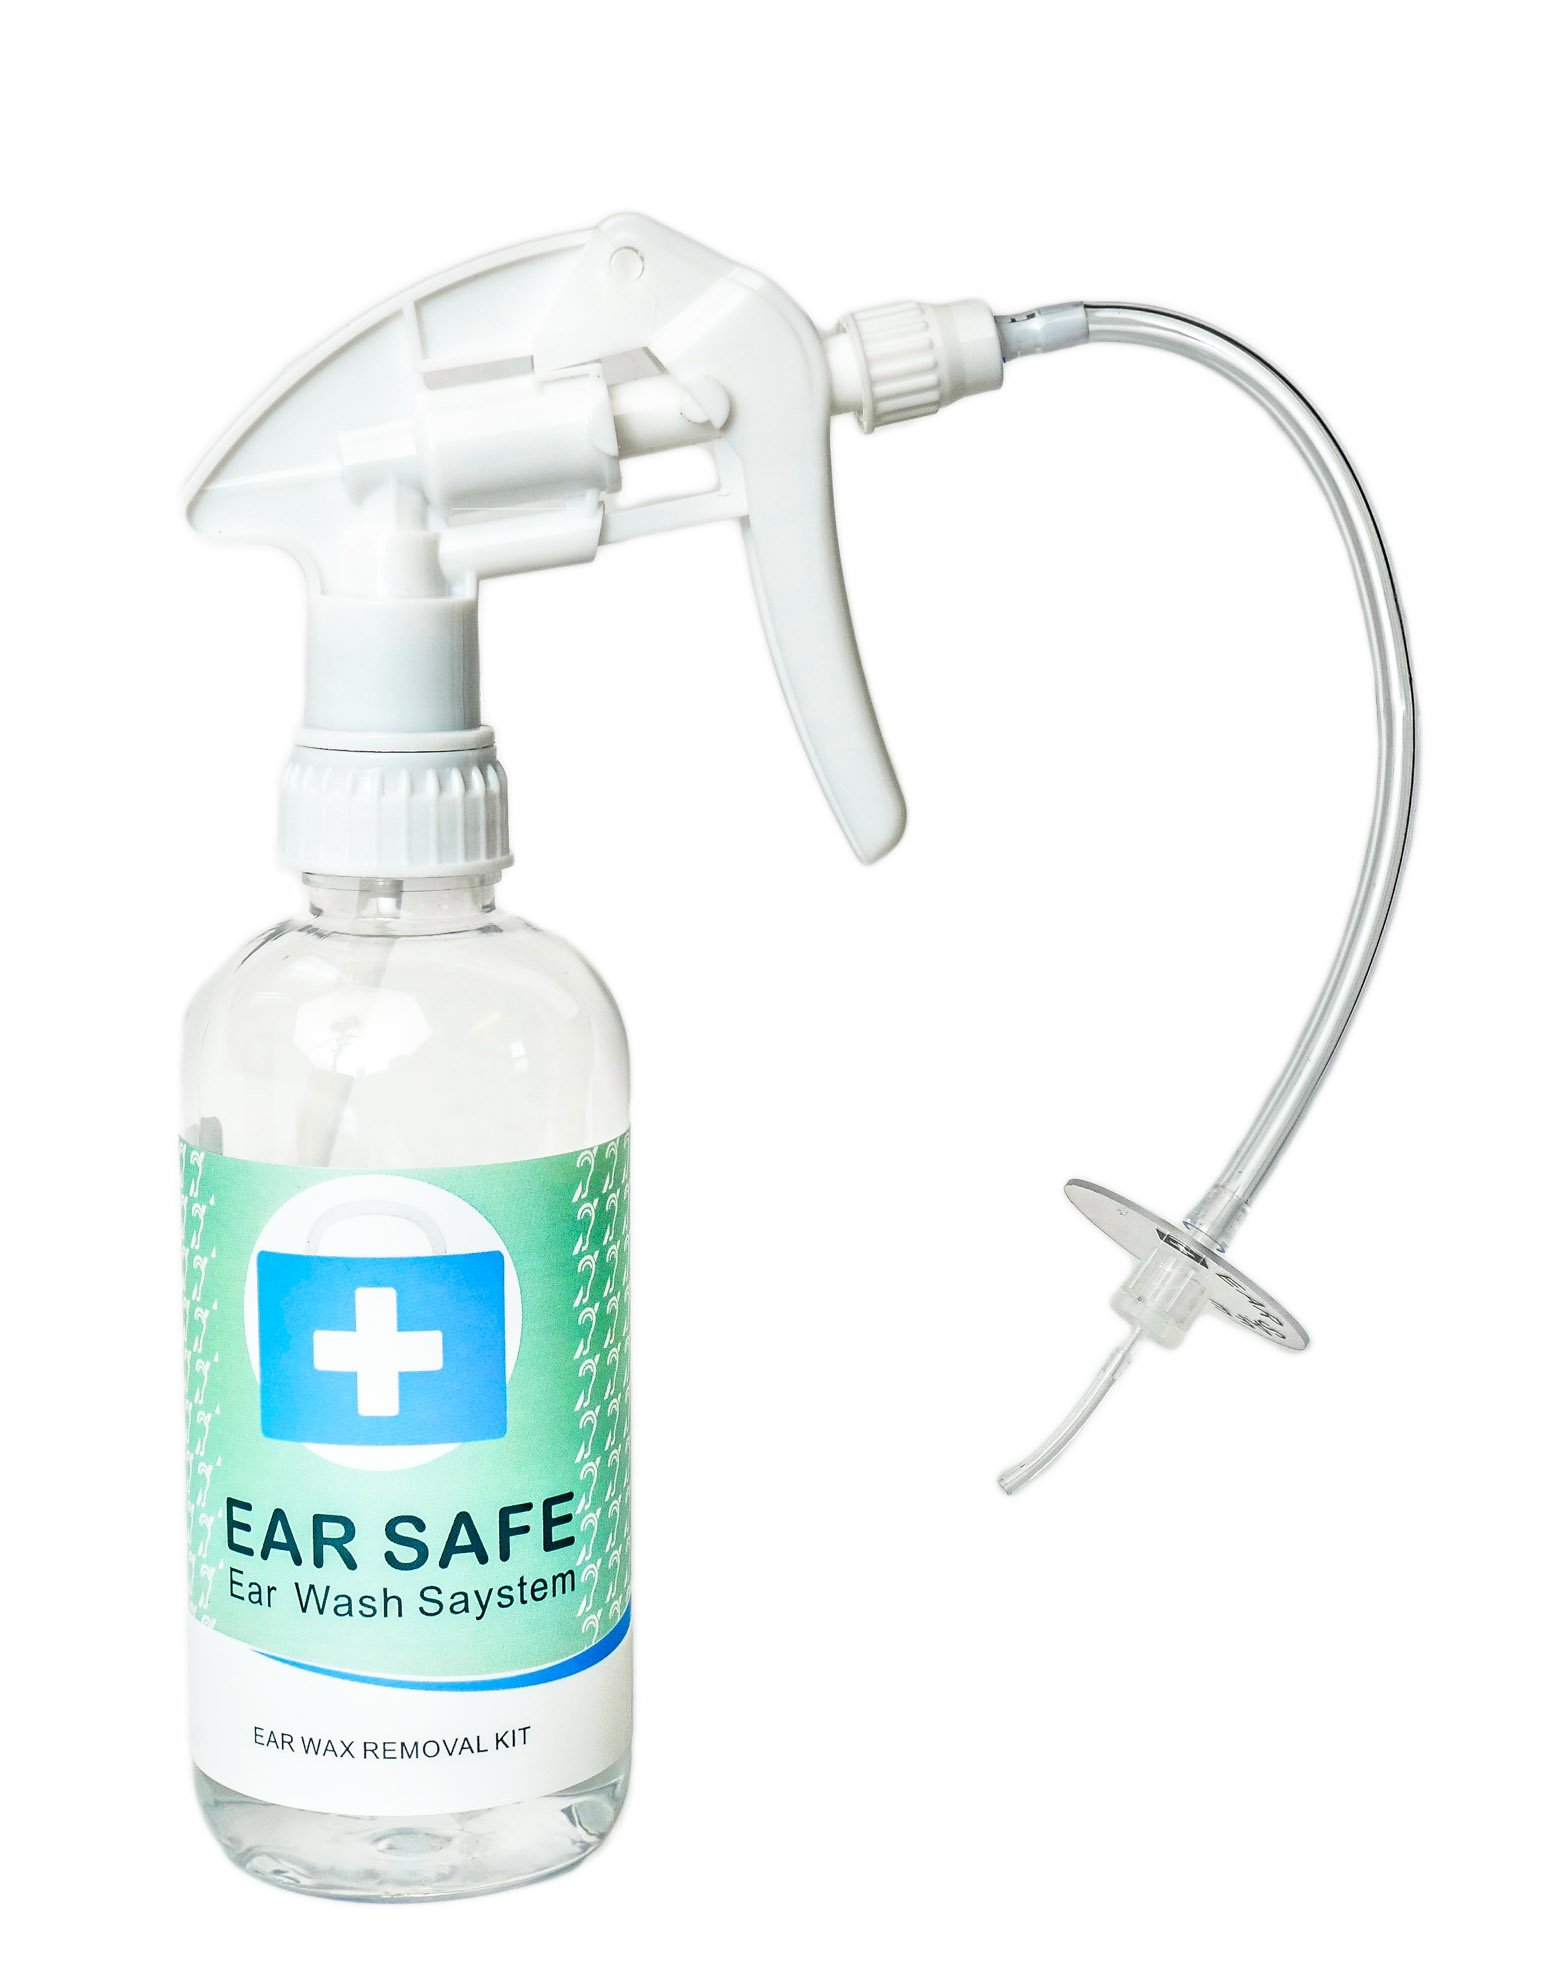 Ear Wax Removal System - Ear Safe - Ear Wash Kit - Complete Ear Irrigation Bottle with 4 Tips